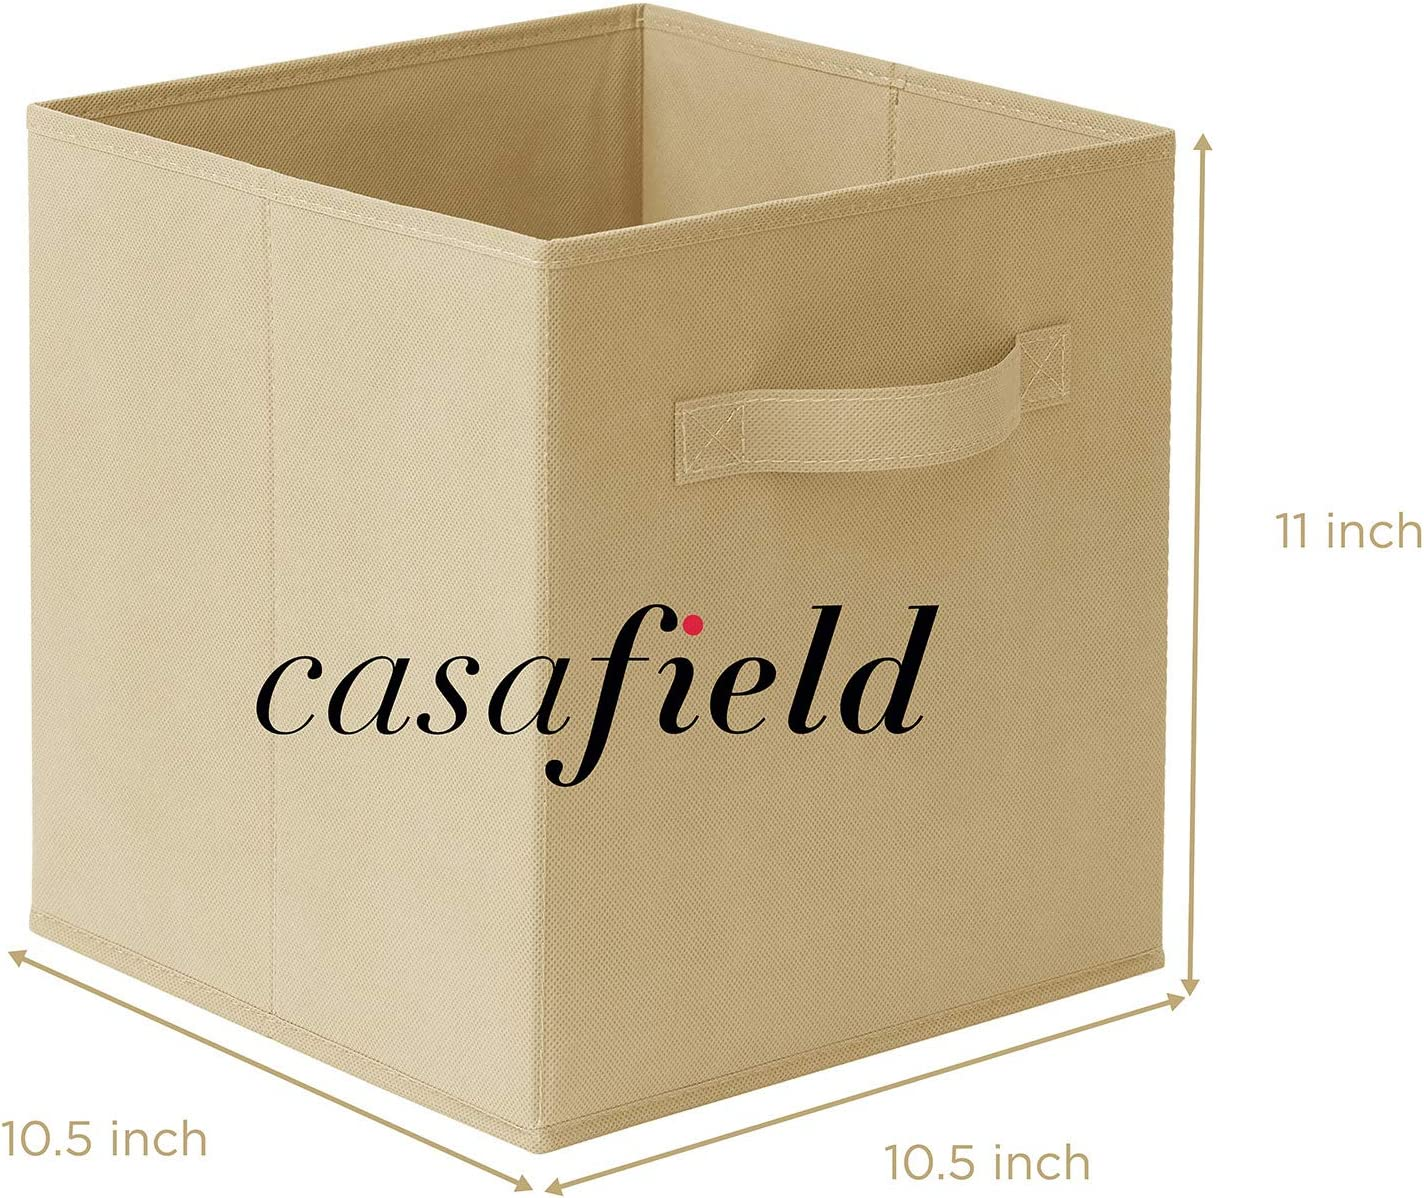 Cubby Organizers /& More Casafield Set of 6 Collapsible Fabric Cube Storage Bins Baby Blue 11 Foldable Cloth Baskets for Shelves